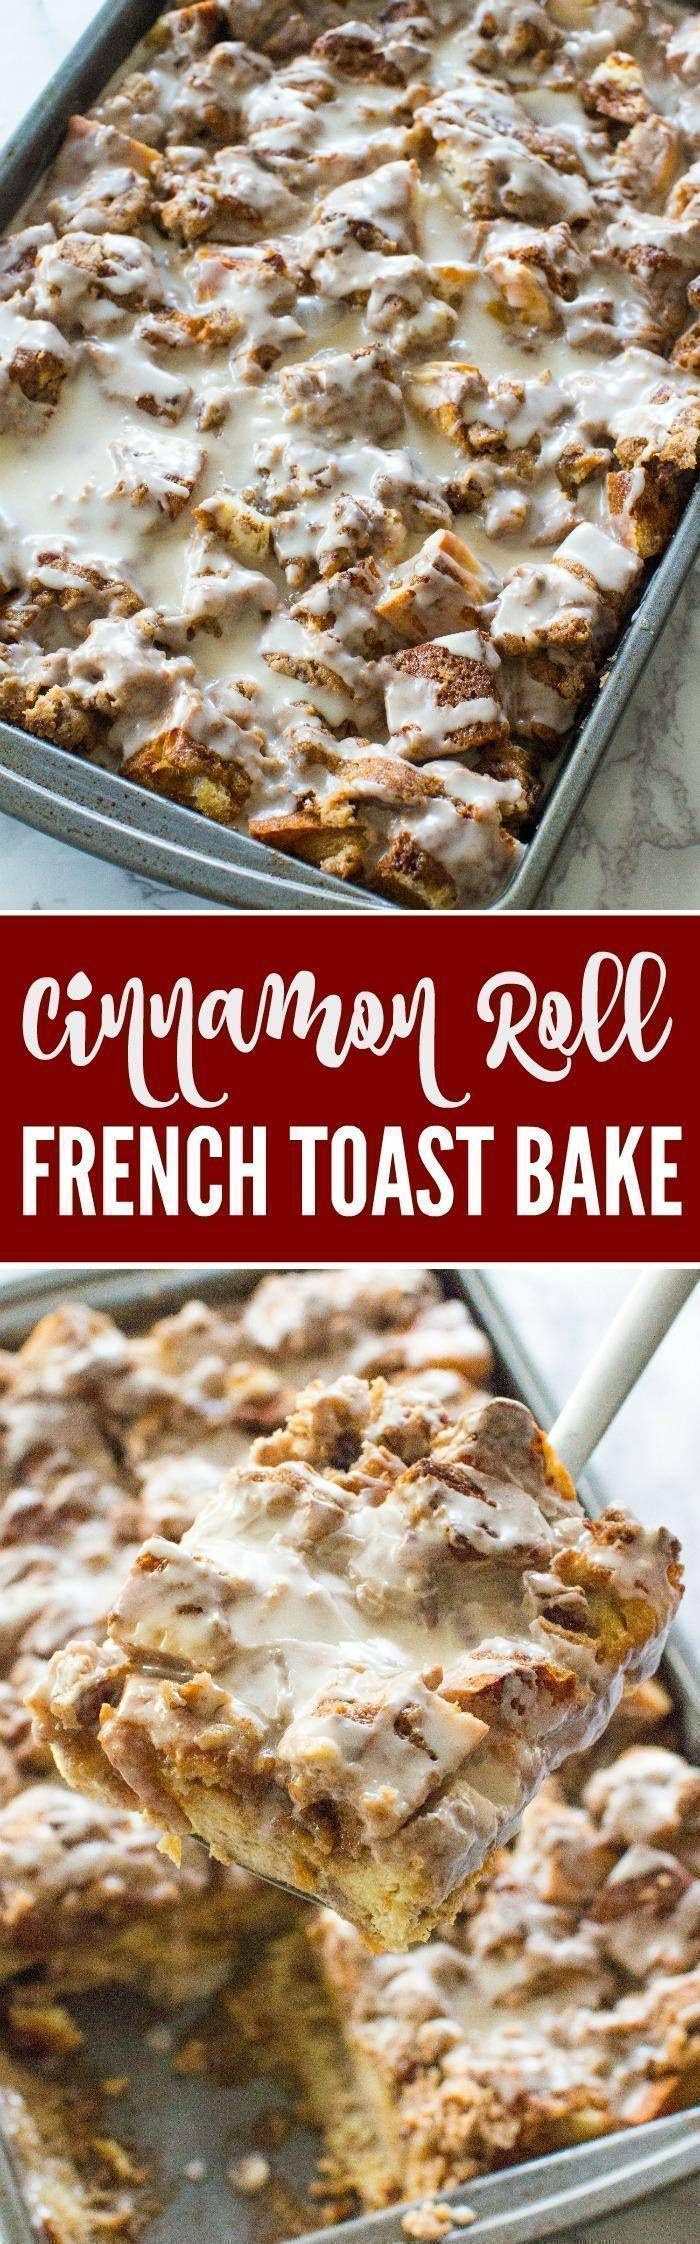 Easy Cinnamon Roll French Toast Bake Recipe! Easy Holiday Breakfast or Brunch Recipe for Thanksgiving or Christmas. A crowd favorite French Toast Cass...